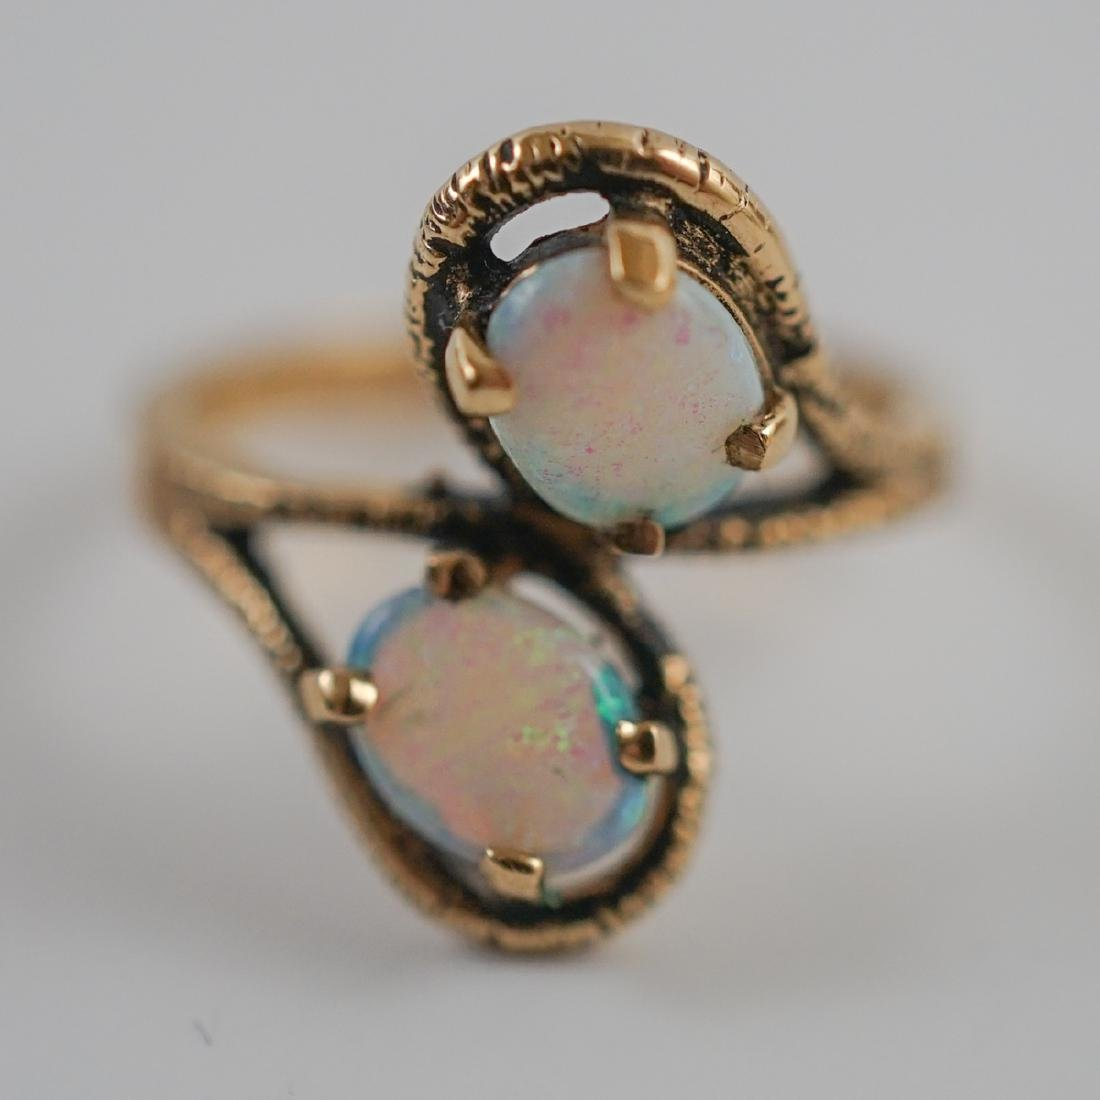 Ladies 10K Yellow Gold Ring with Opals